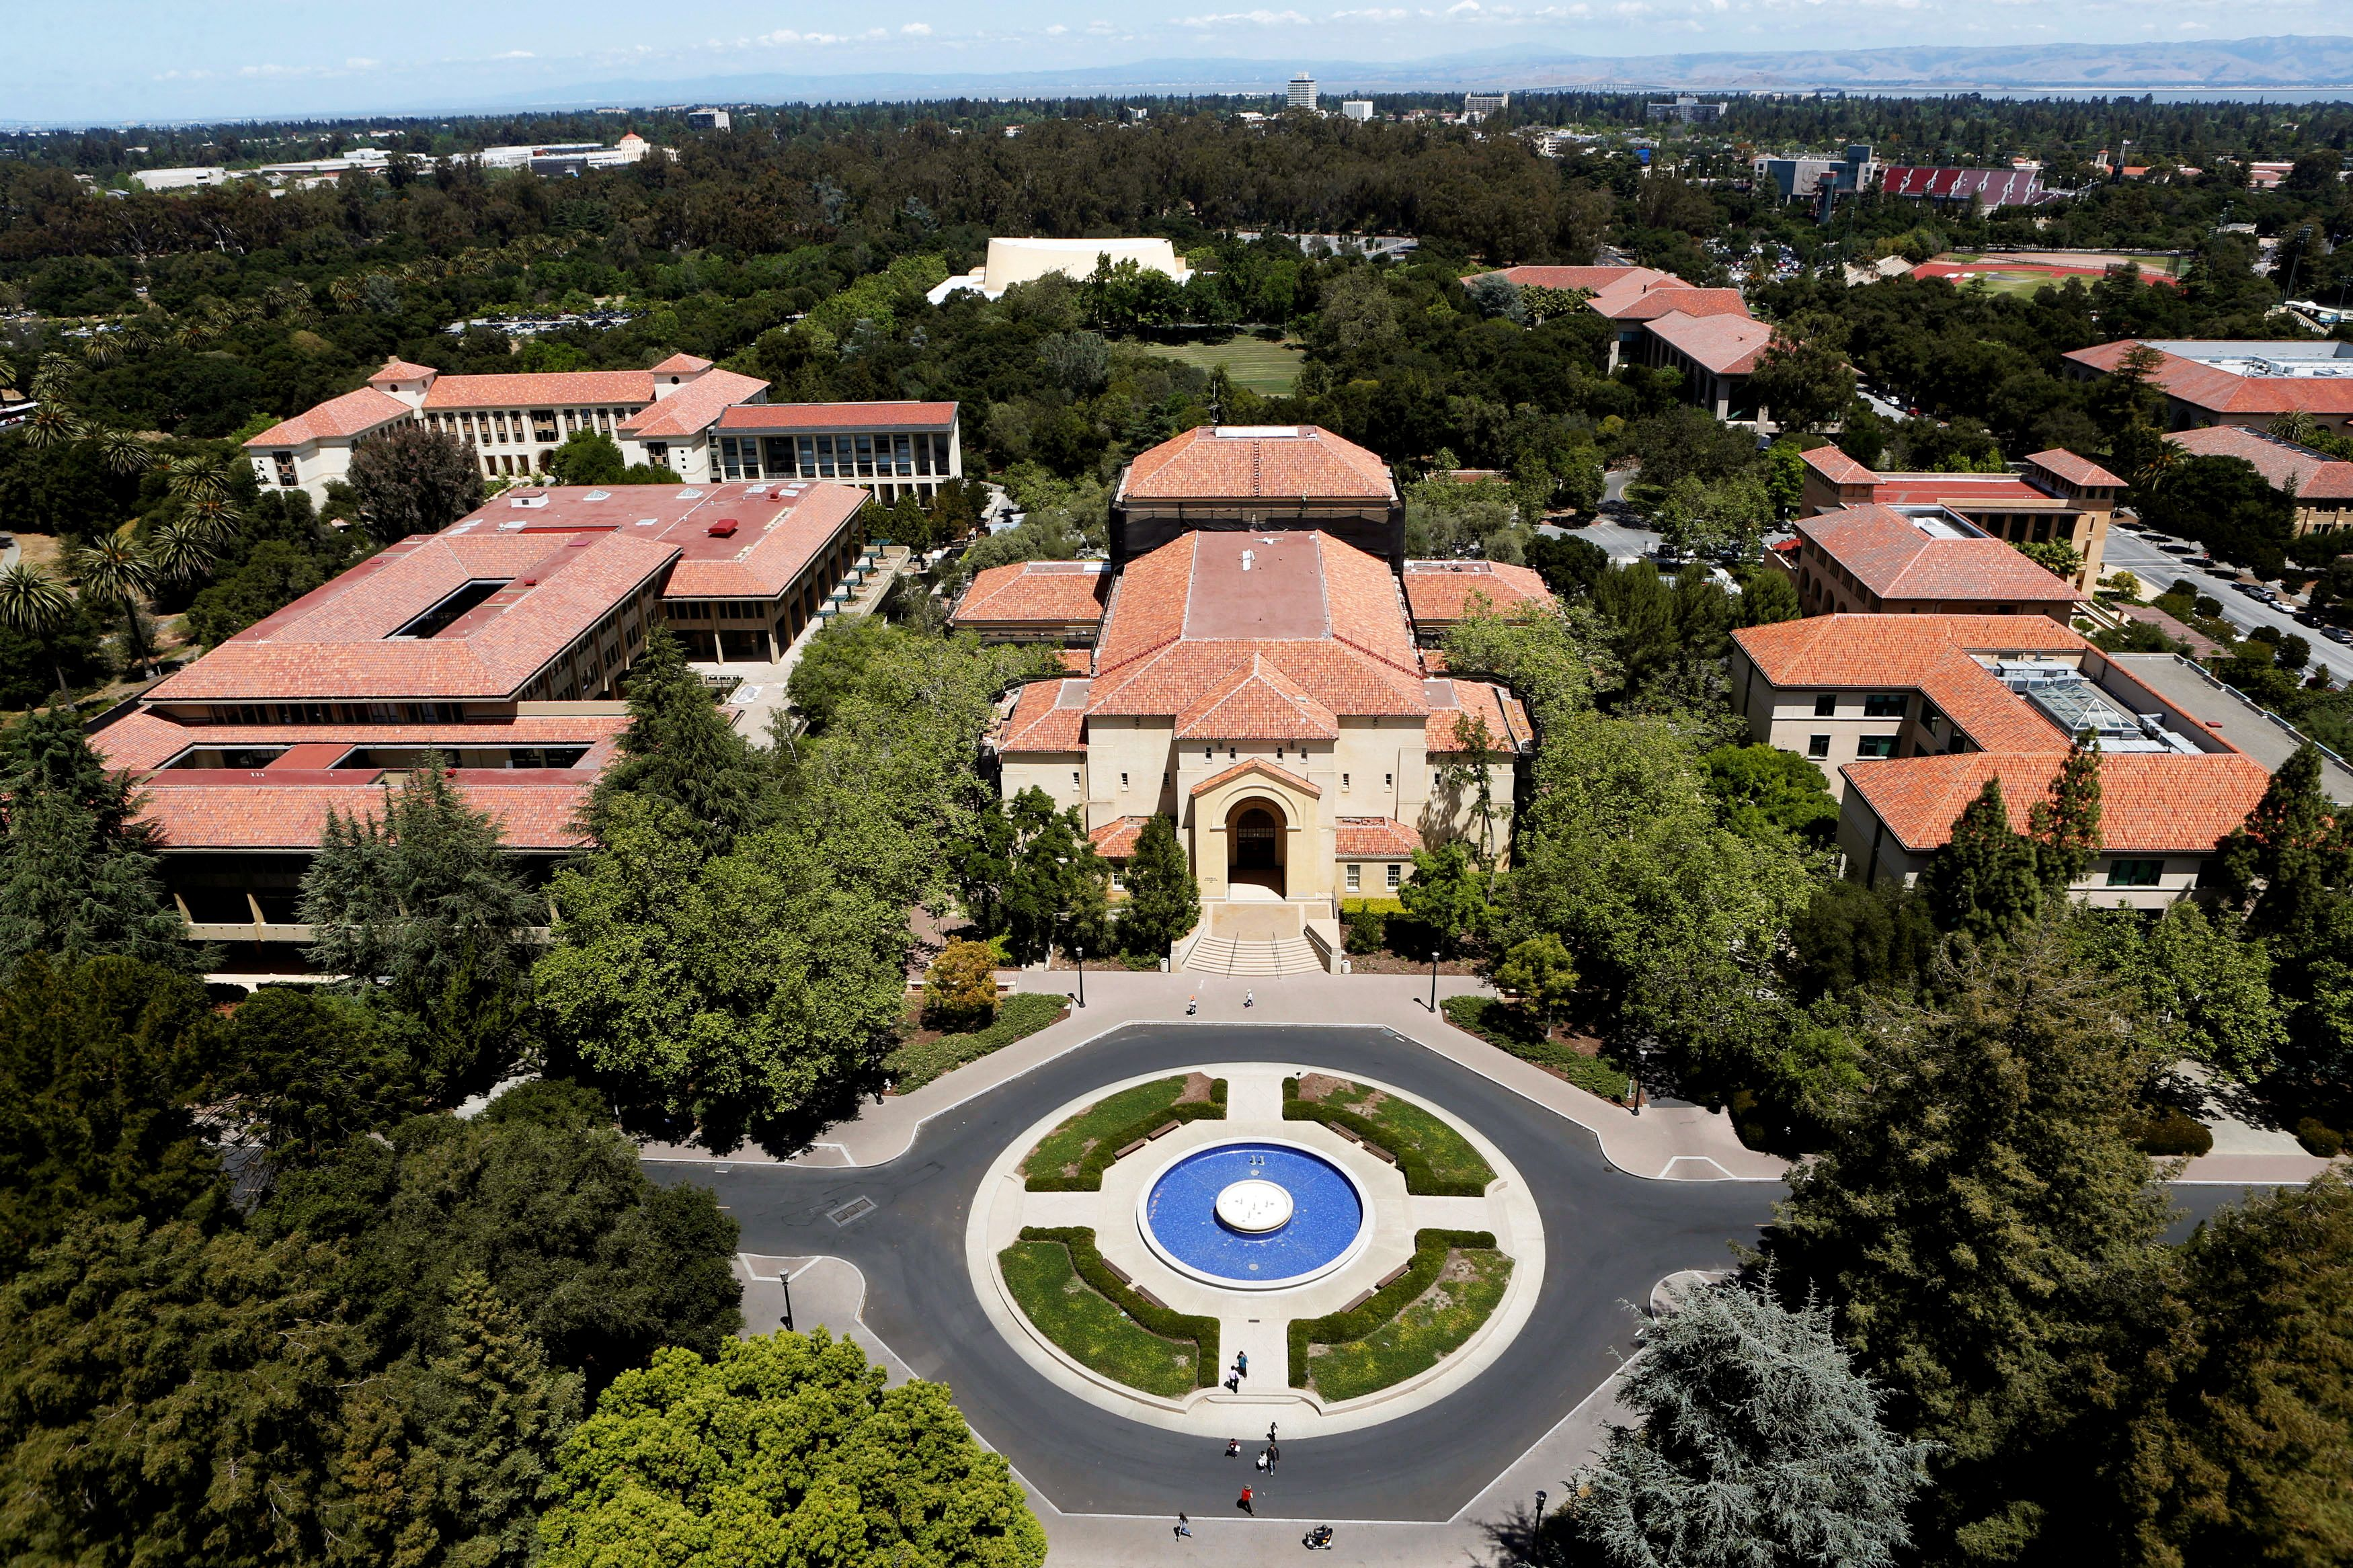 Stanford University's campus is seen from atop Hoover Tower in Stanford, California, U.S. on May 9, 2014.  REUTERS/Beck Diefenbach/File Photo